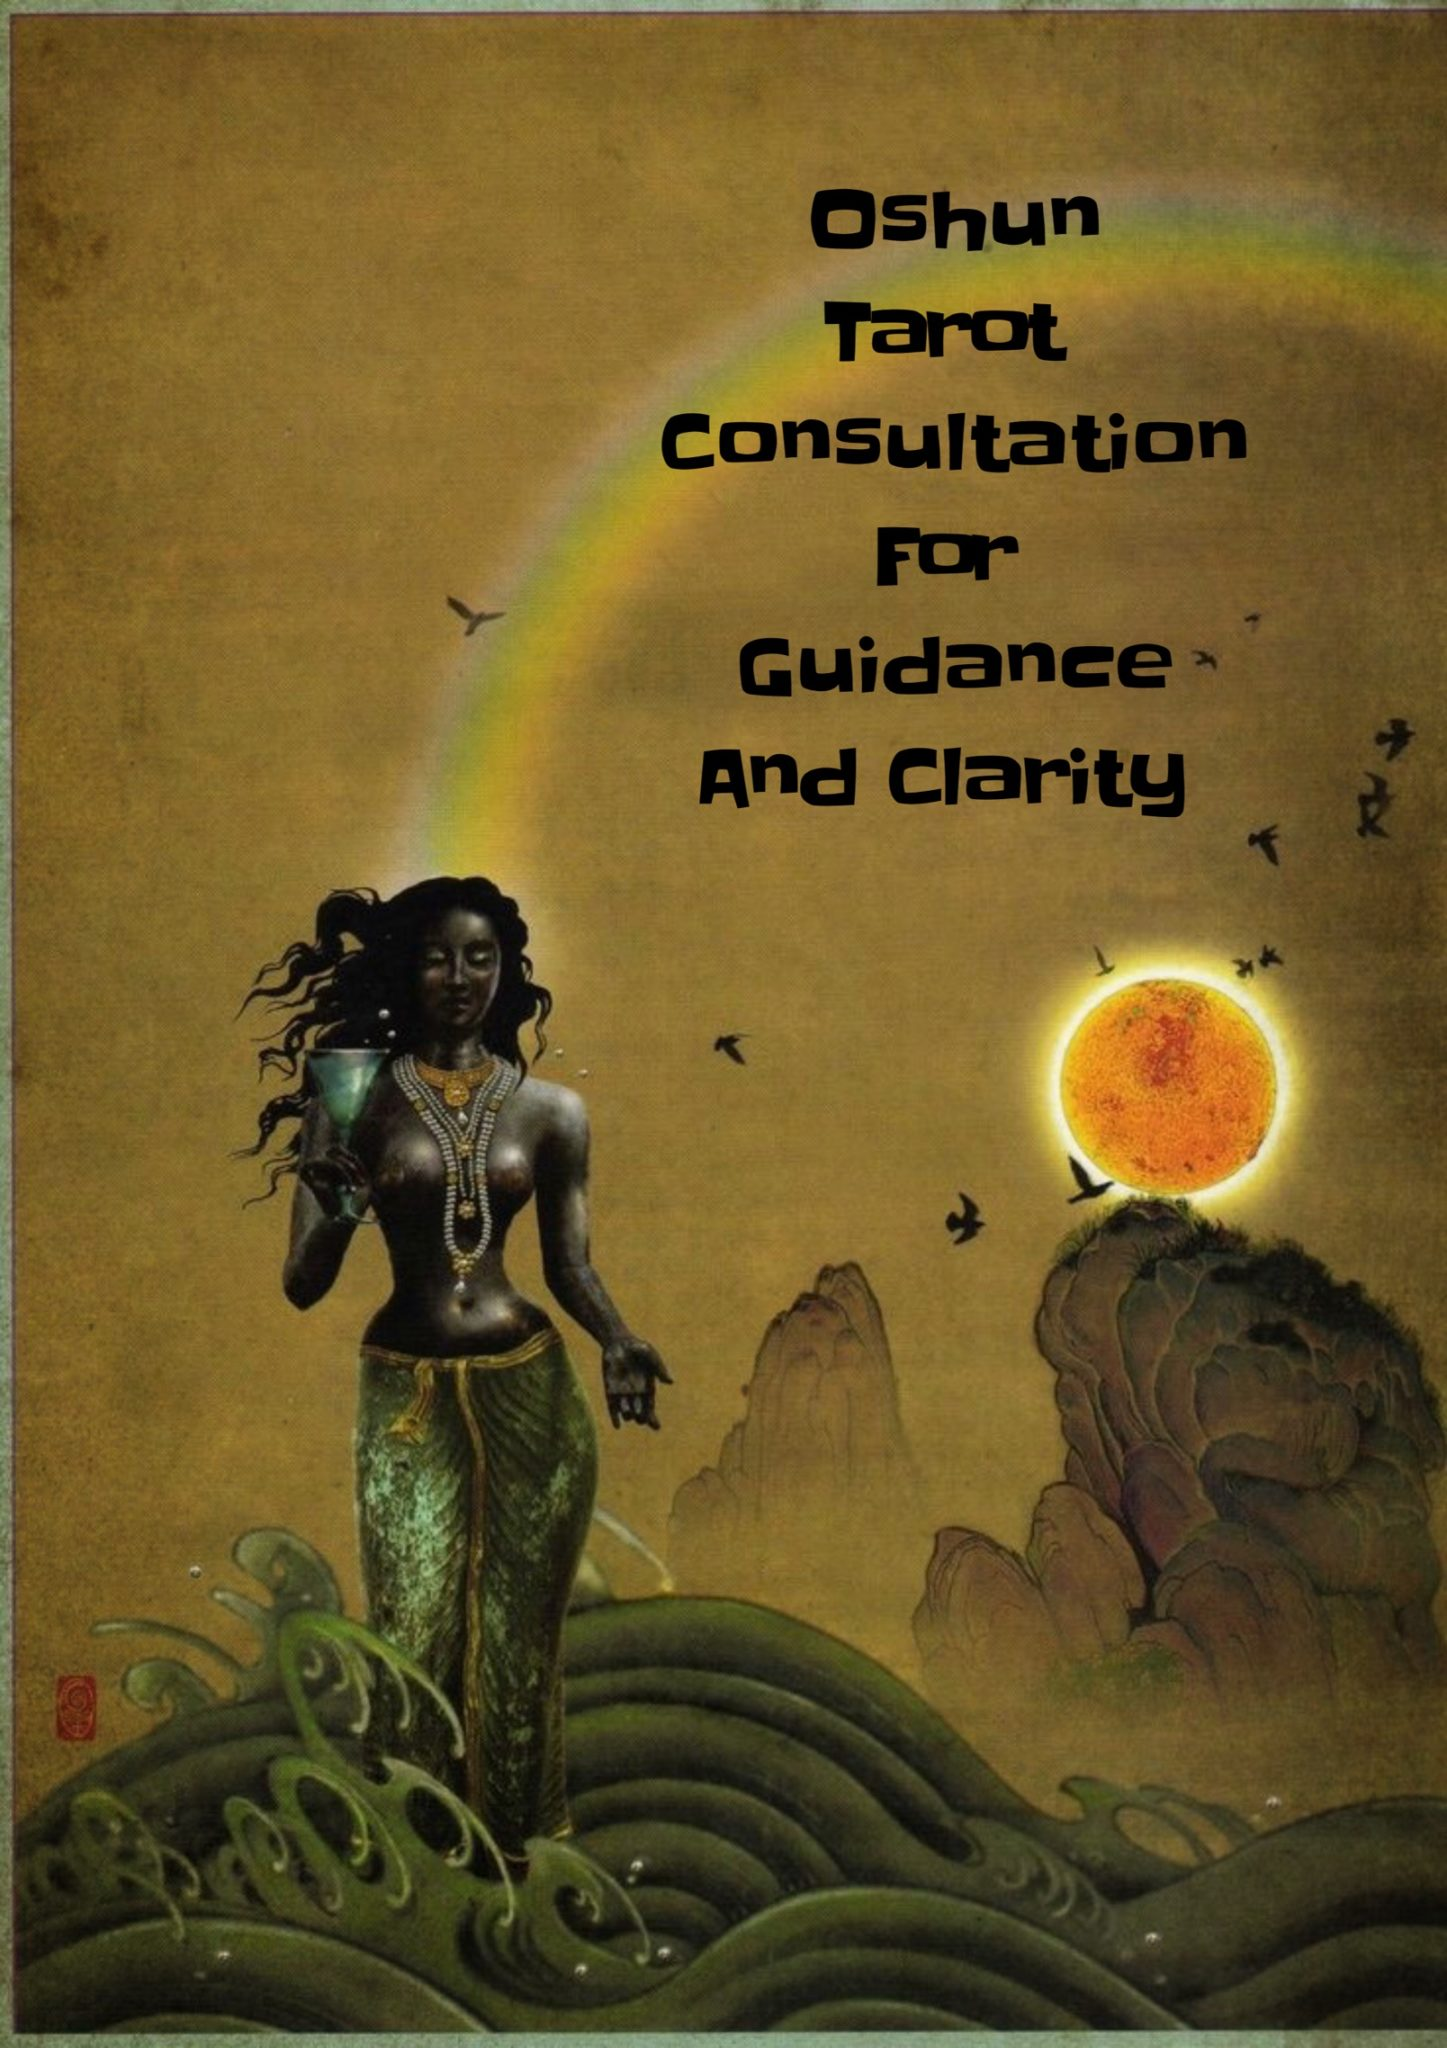 208539fec0ef7 Oshun Tarot Consultation for Guidance and Clarity - Light Witch Tarot